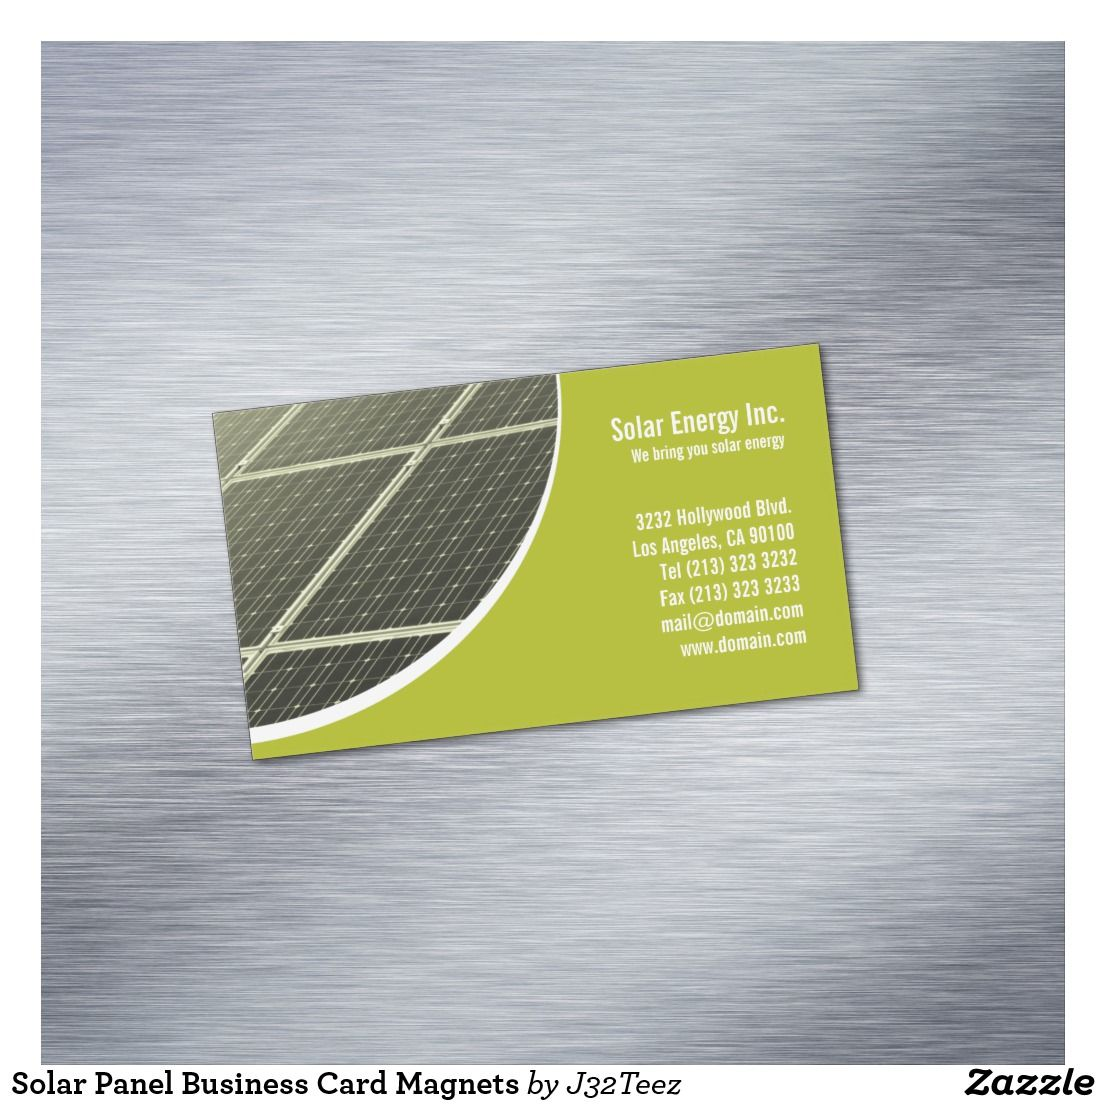 Solar Panel Business Card Magnets | Business cards, Card templates ...